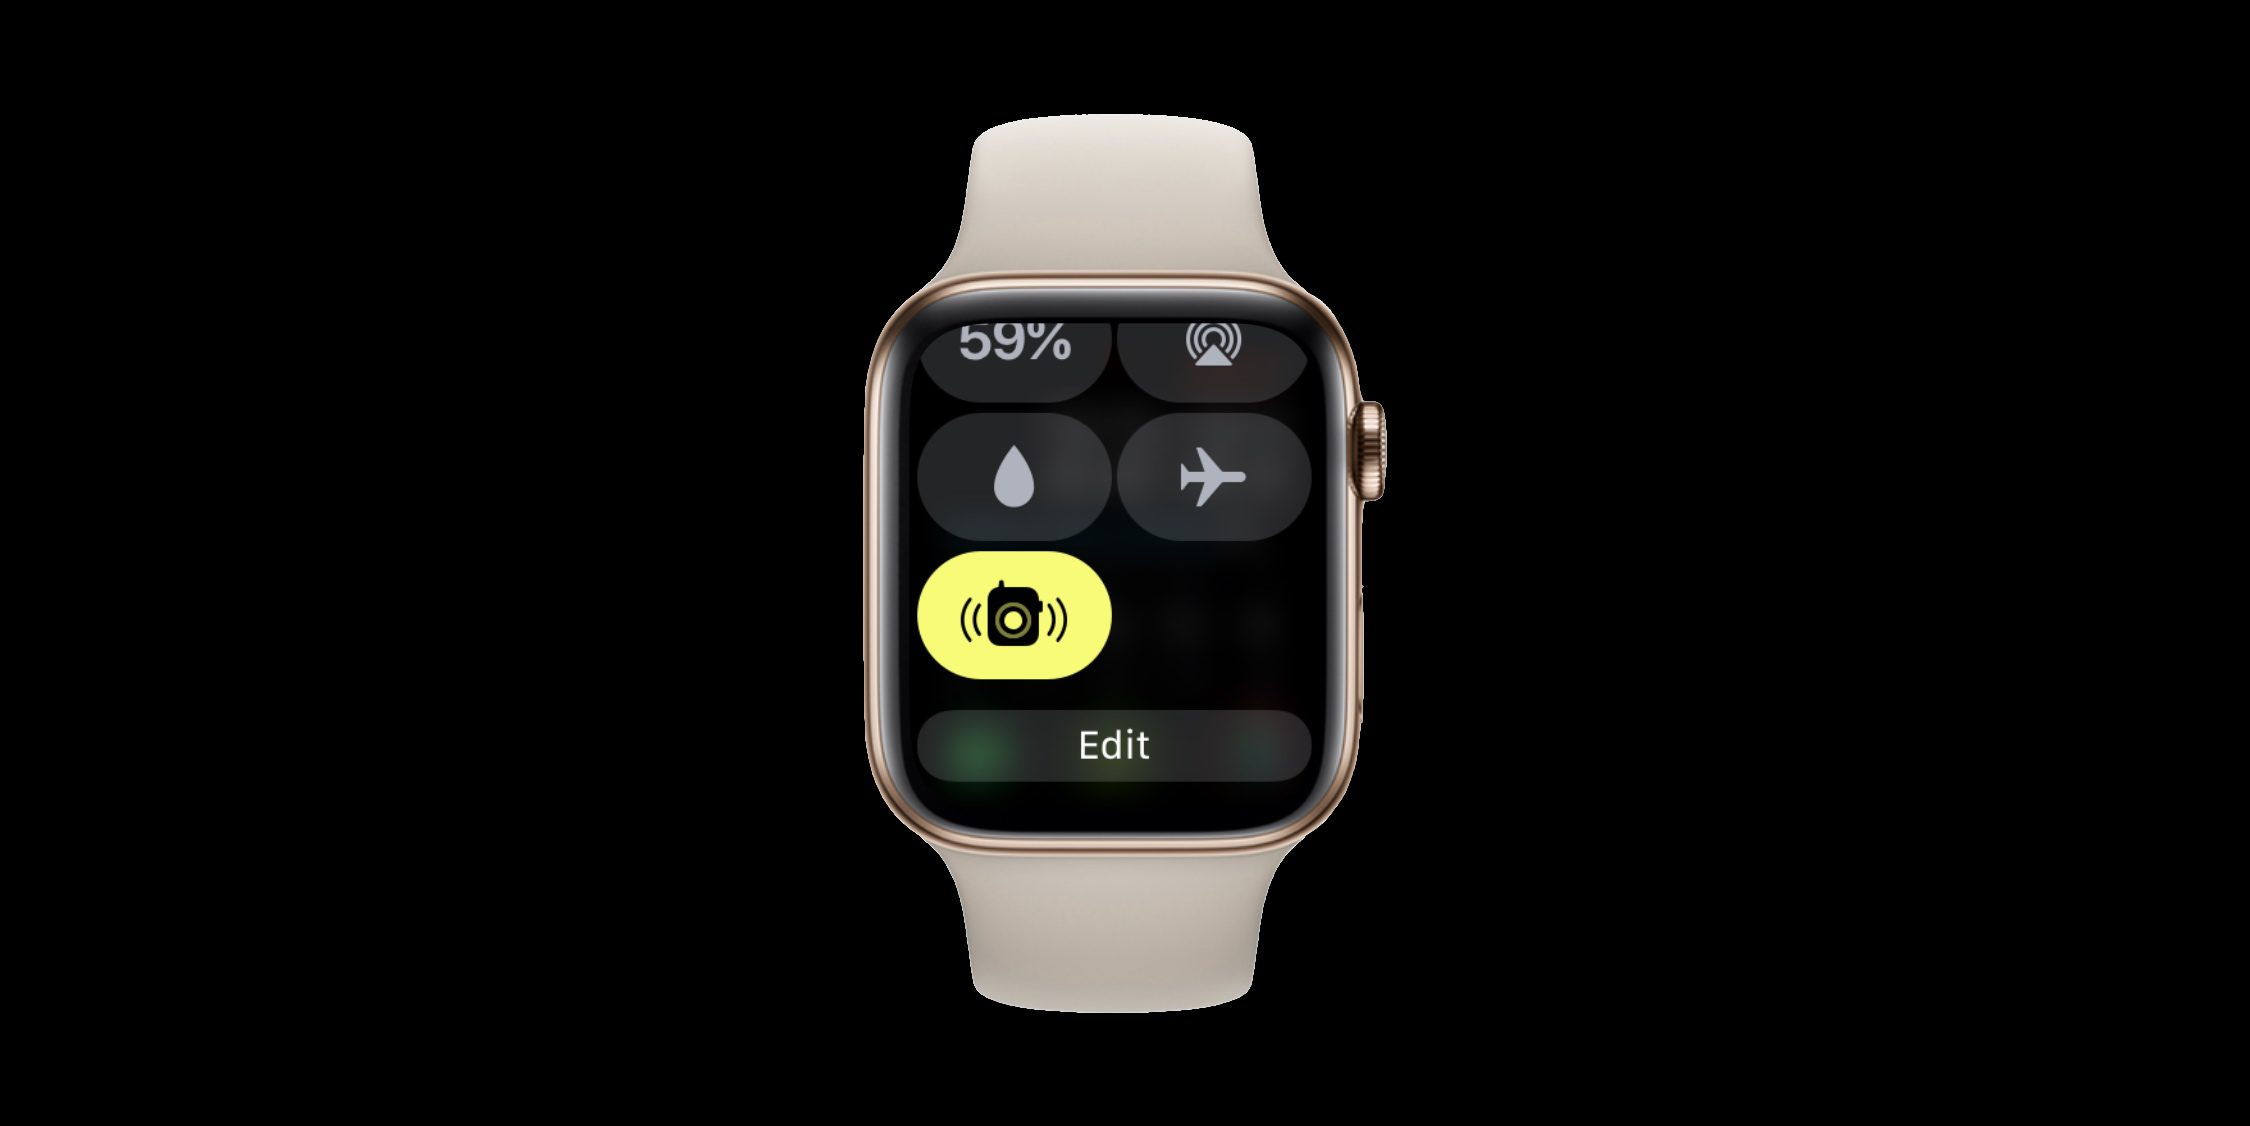 Apple released the beta version of iOS 12.1.1, 12.1.1 tvOS and watchOS 5.1.2 to developers